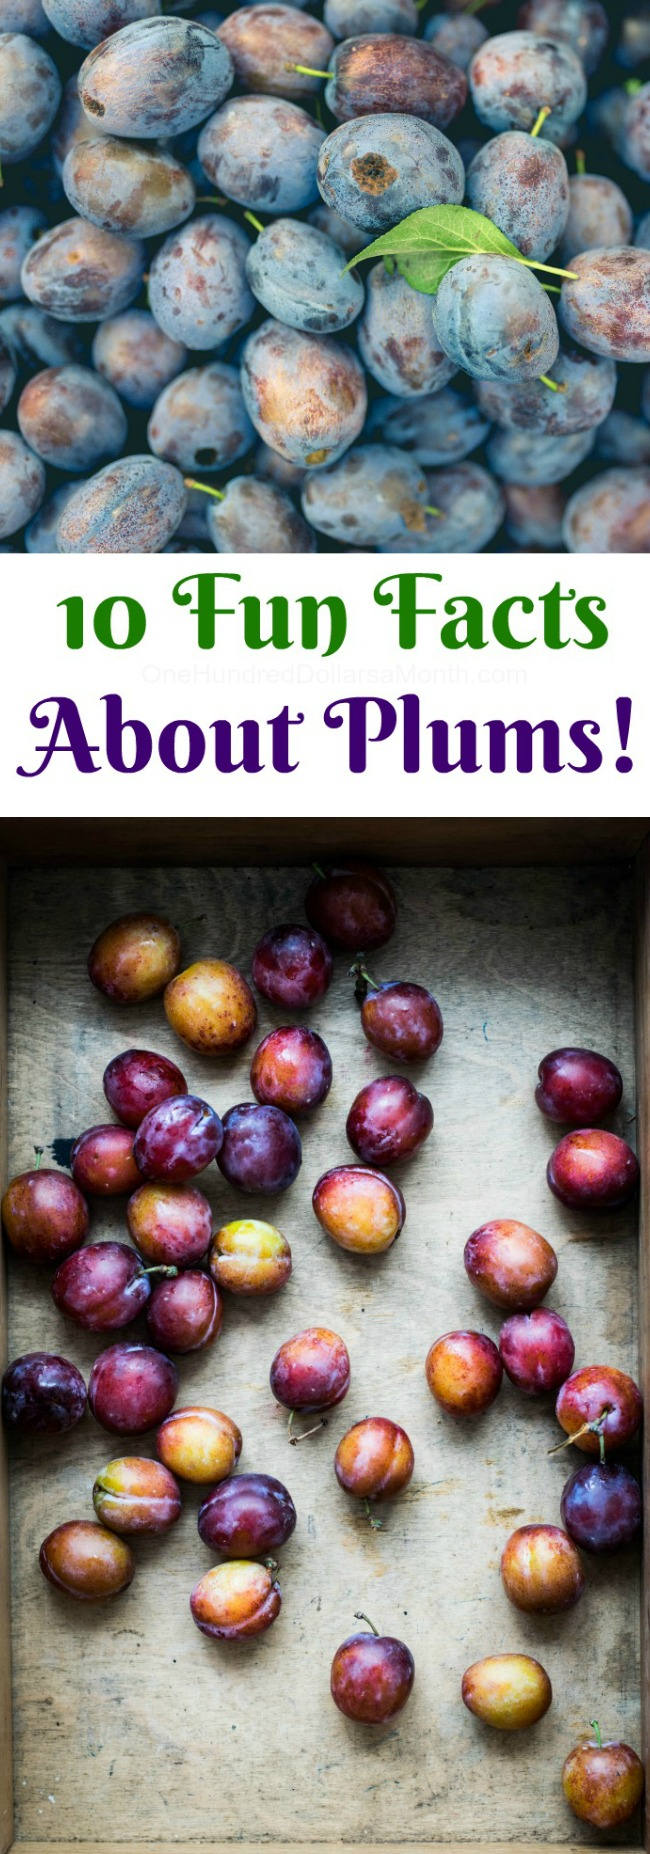 10 Fun Facts About Plums!